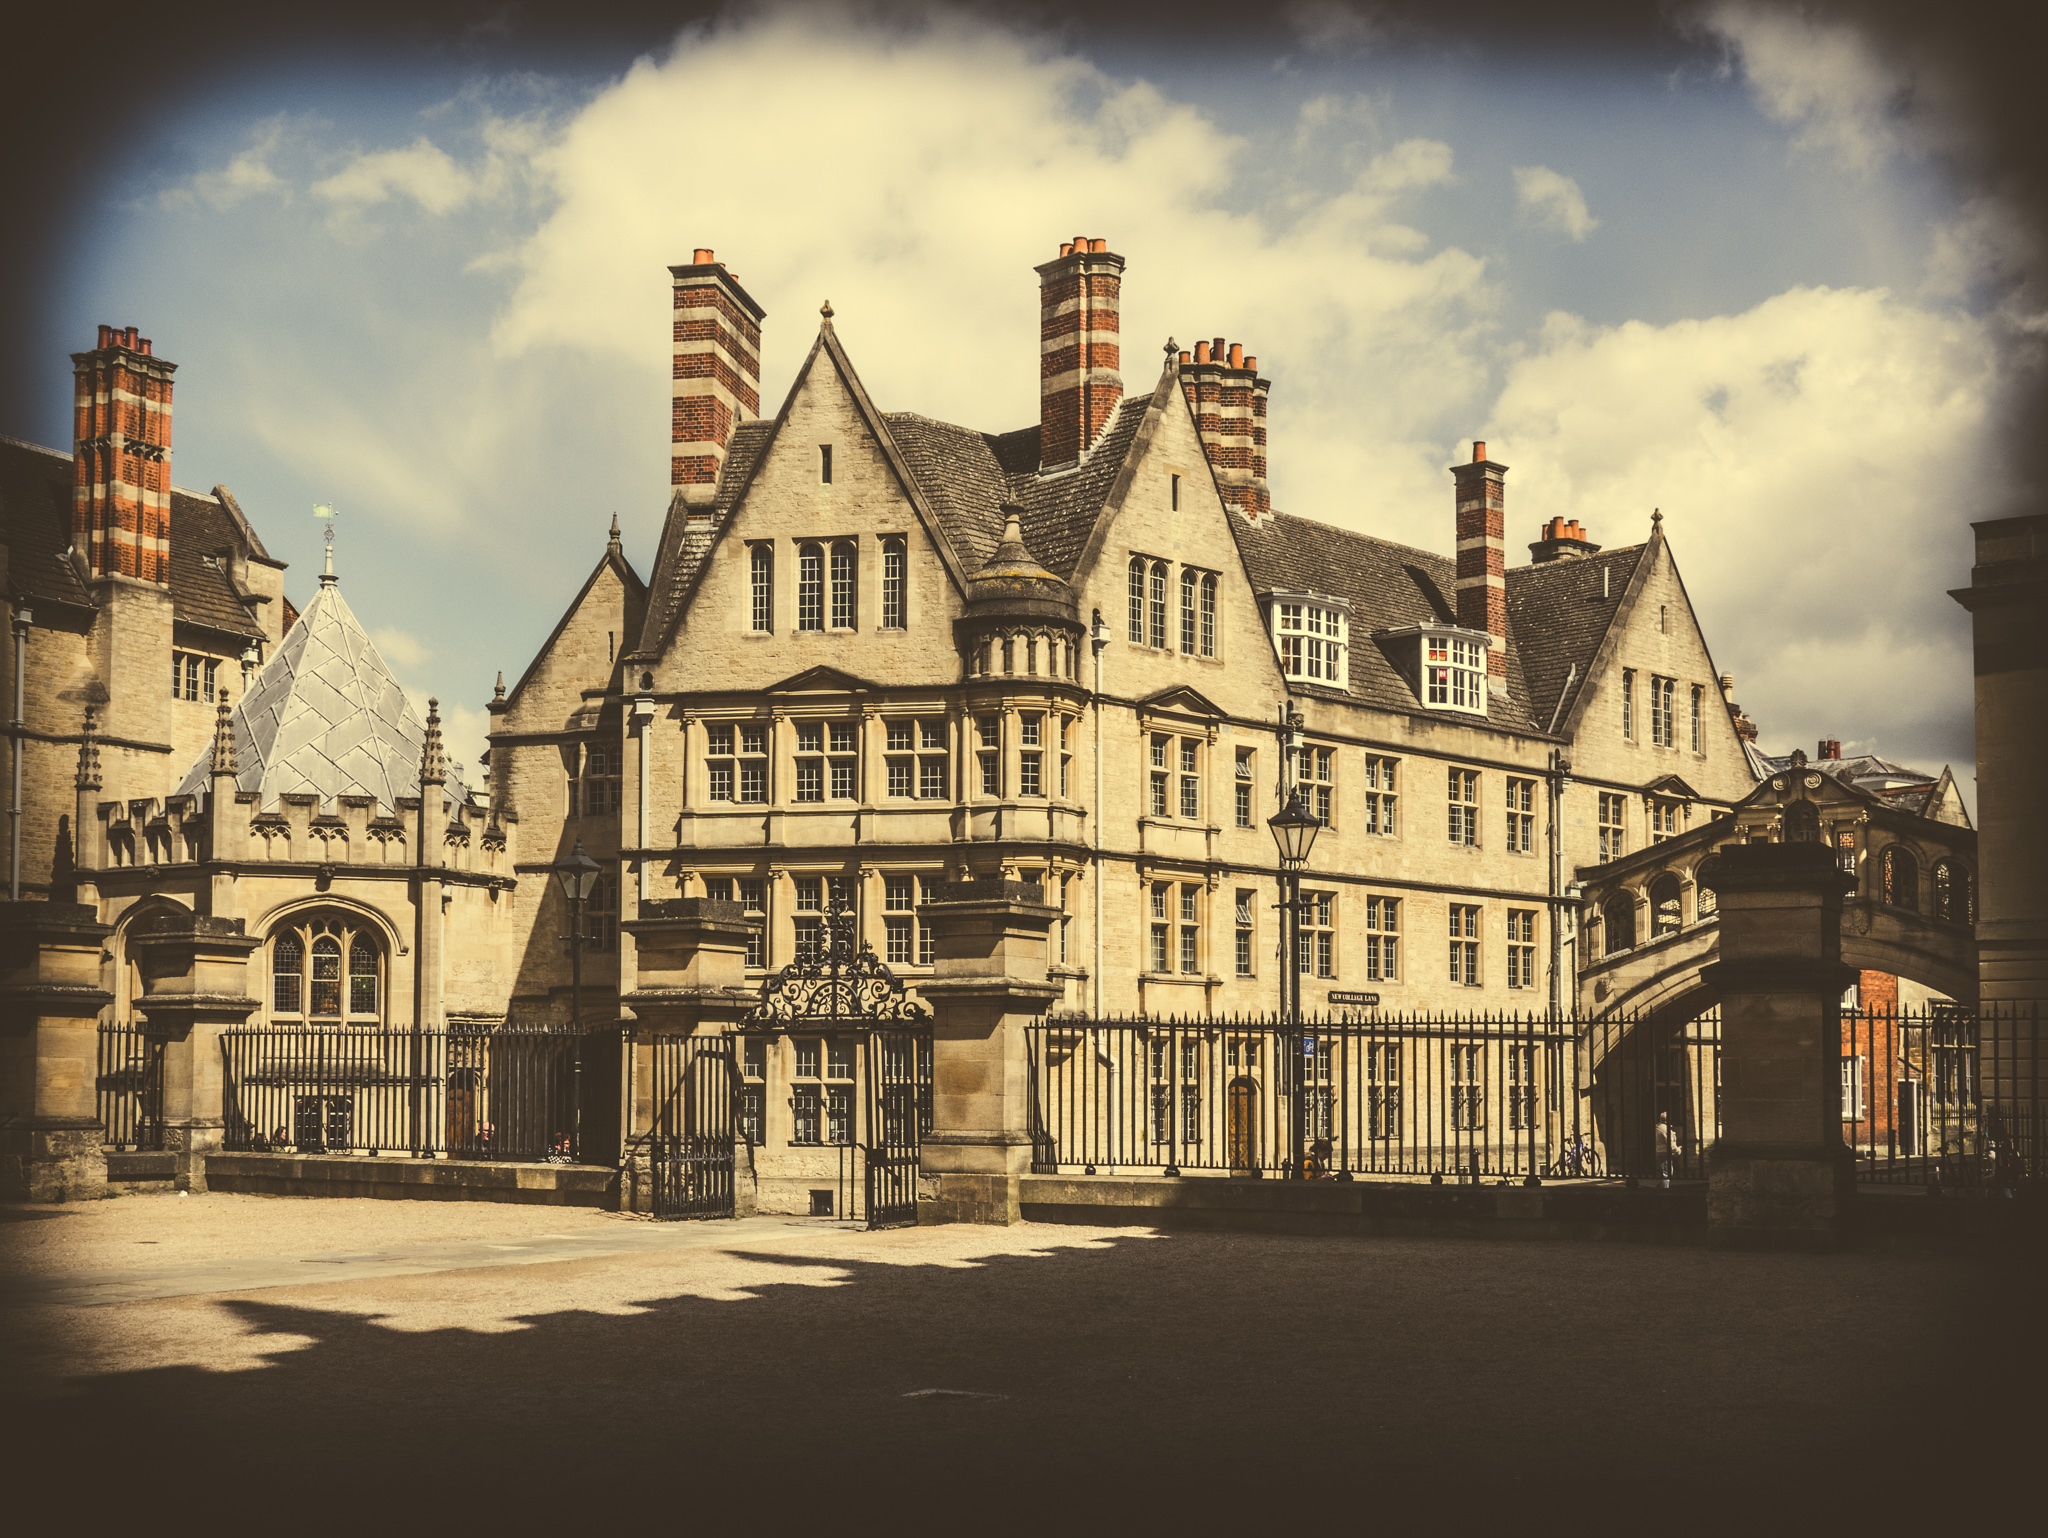 3 Days in Oxford – Day 2. The story of the photographs